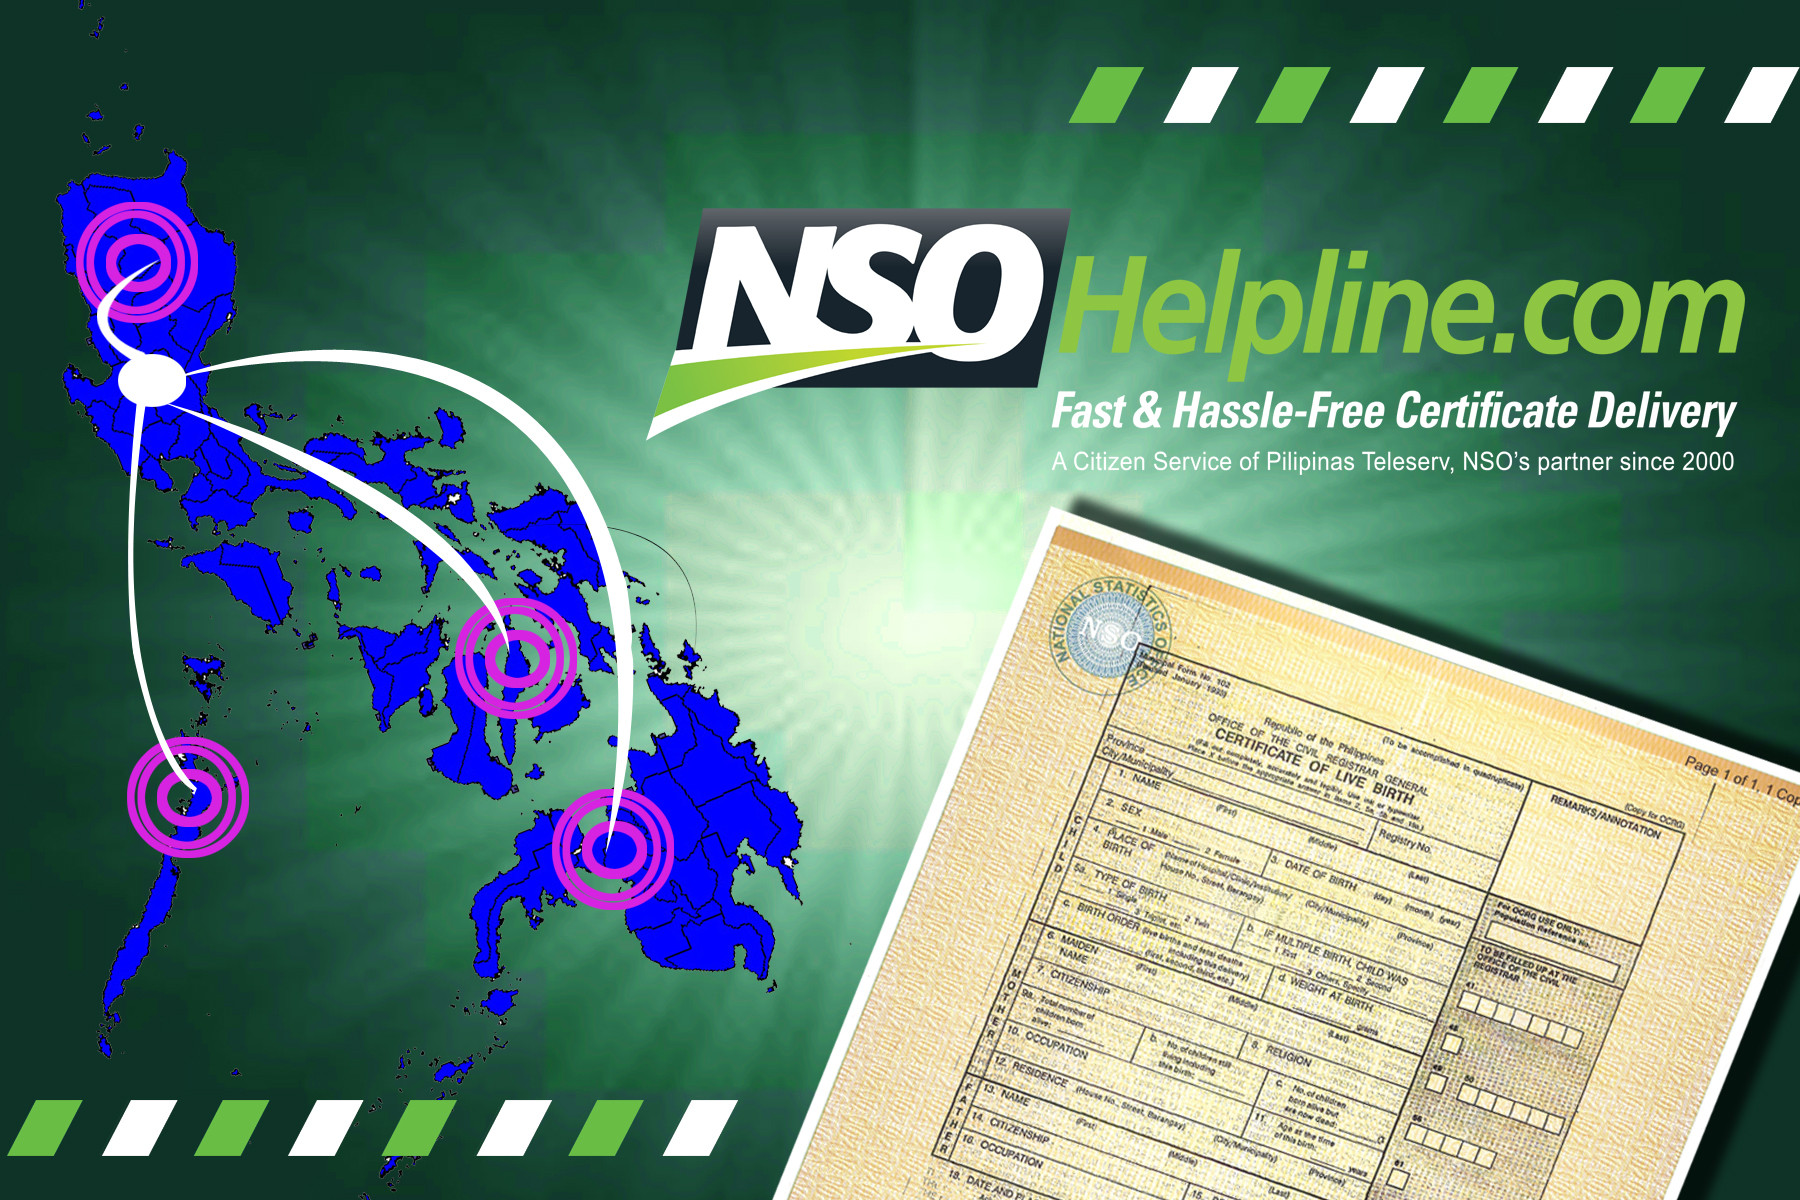 Have a worry free fast hassle free certificate delivery thru tired from waiting almost all day and getting caught in long lines just to get your birth certificate and other nso related certificates xflitez Choice Image